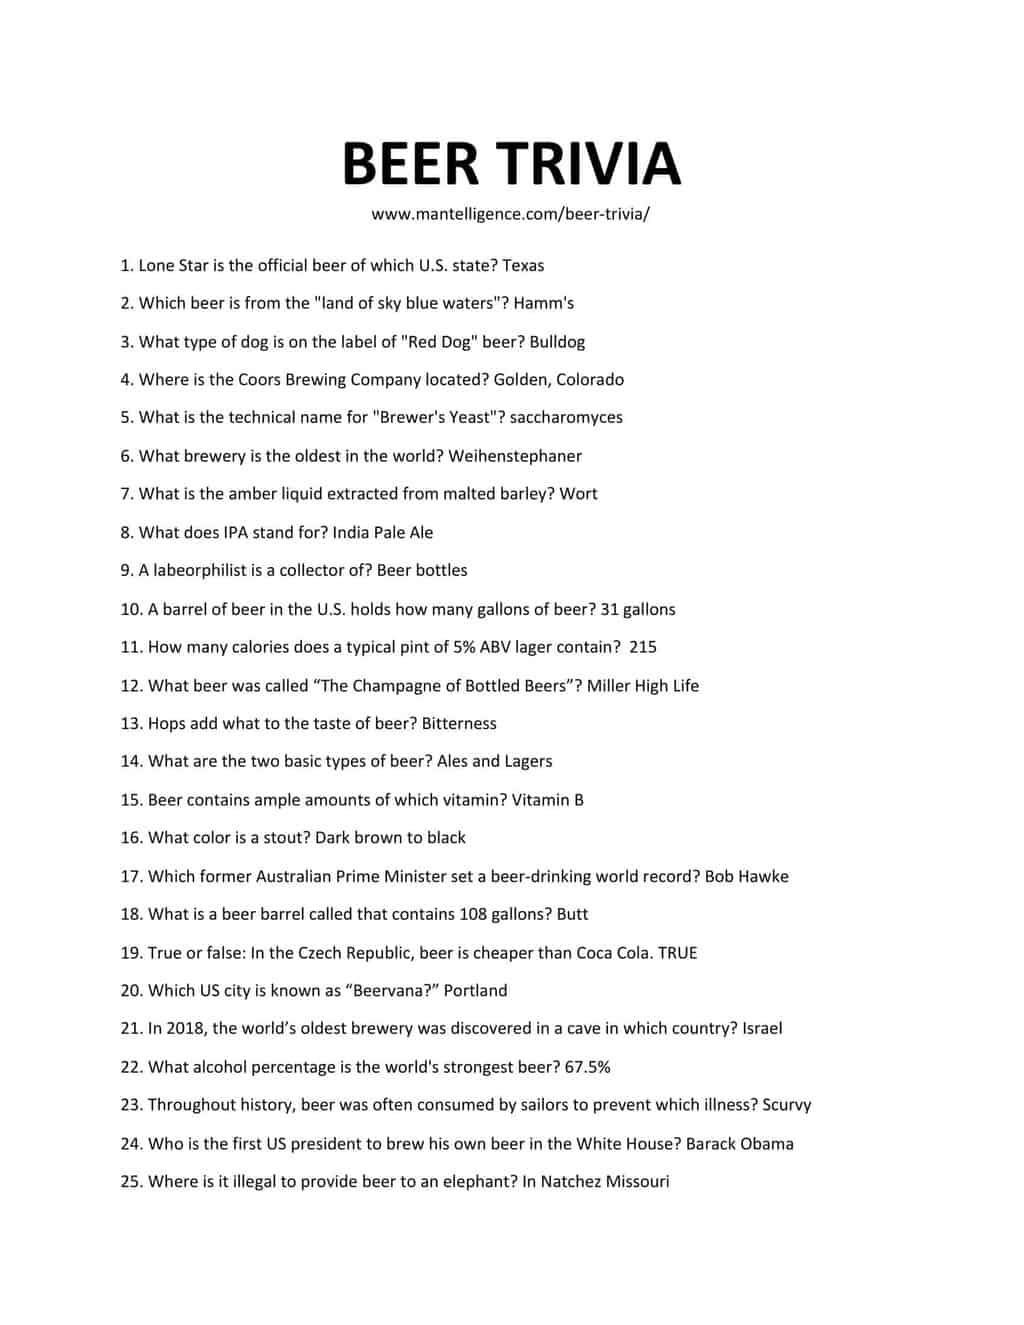 Downloadable and printable jpg/pdf list of beer trivia